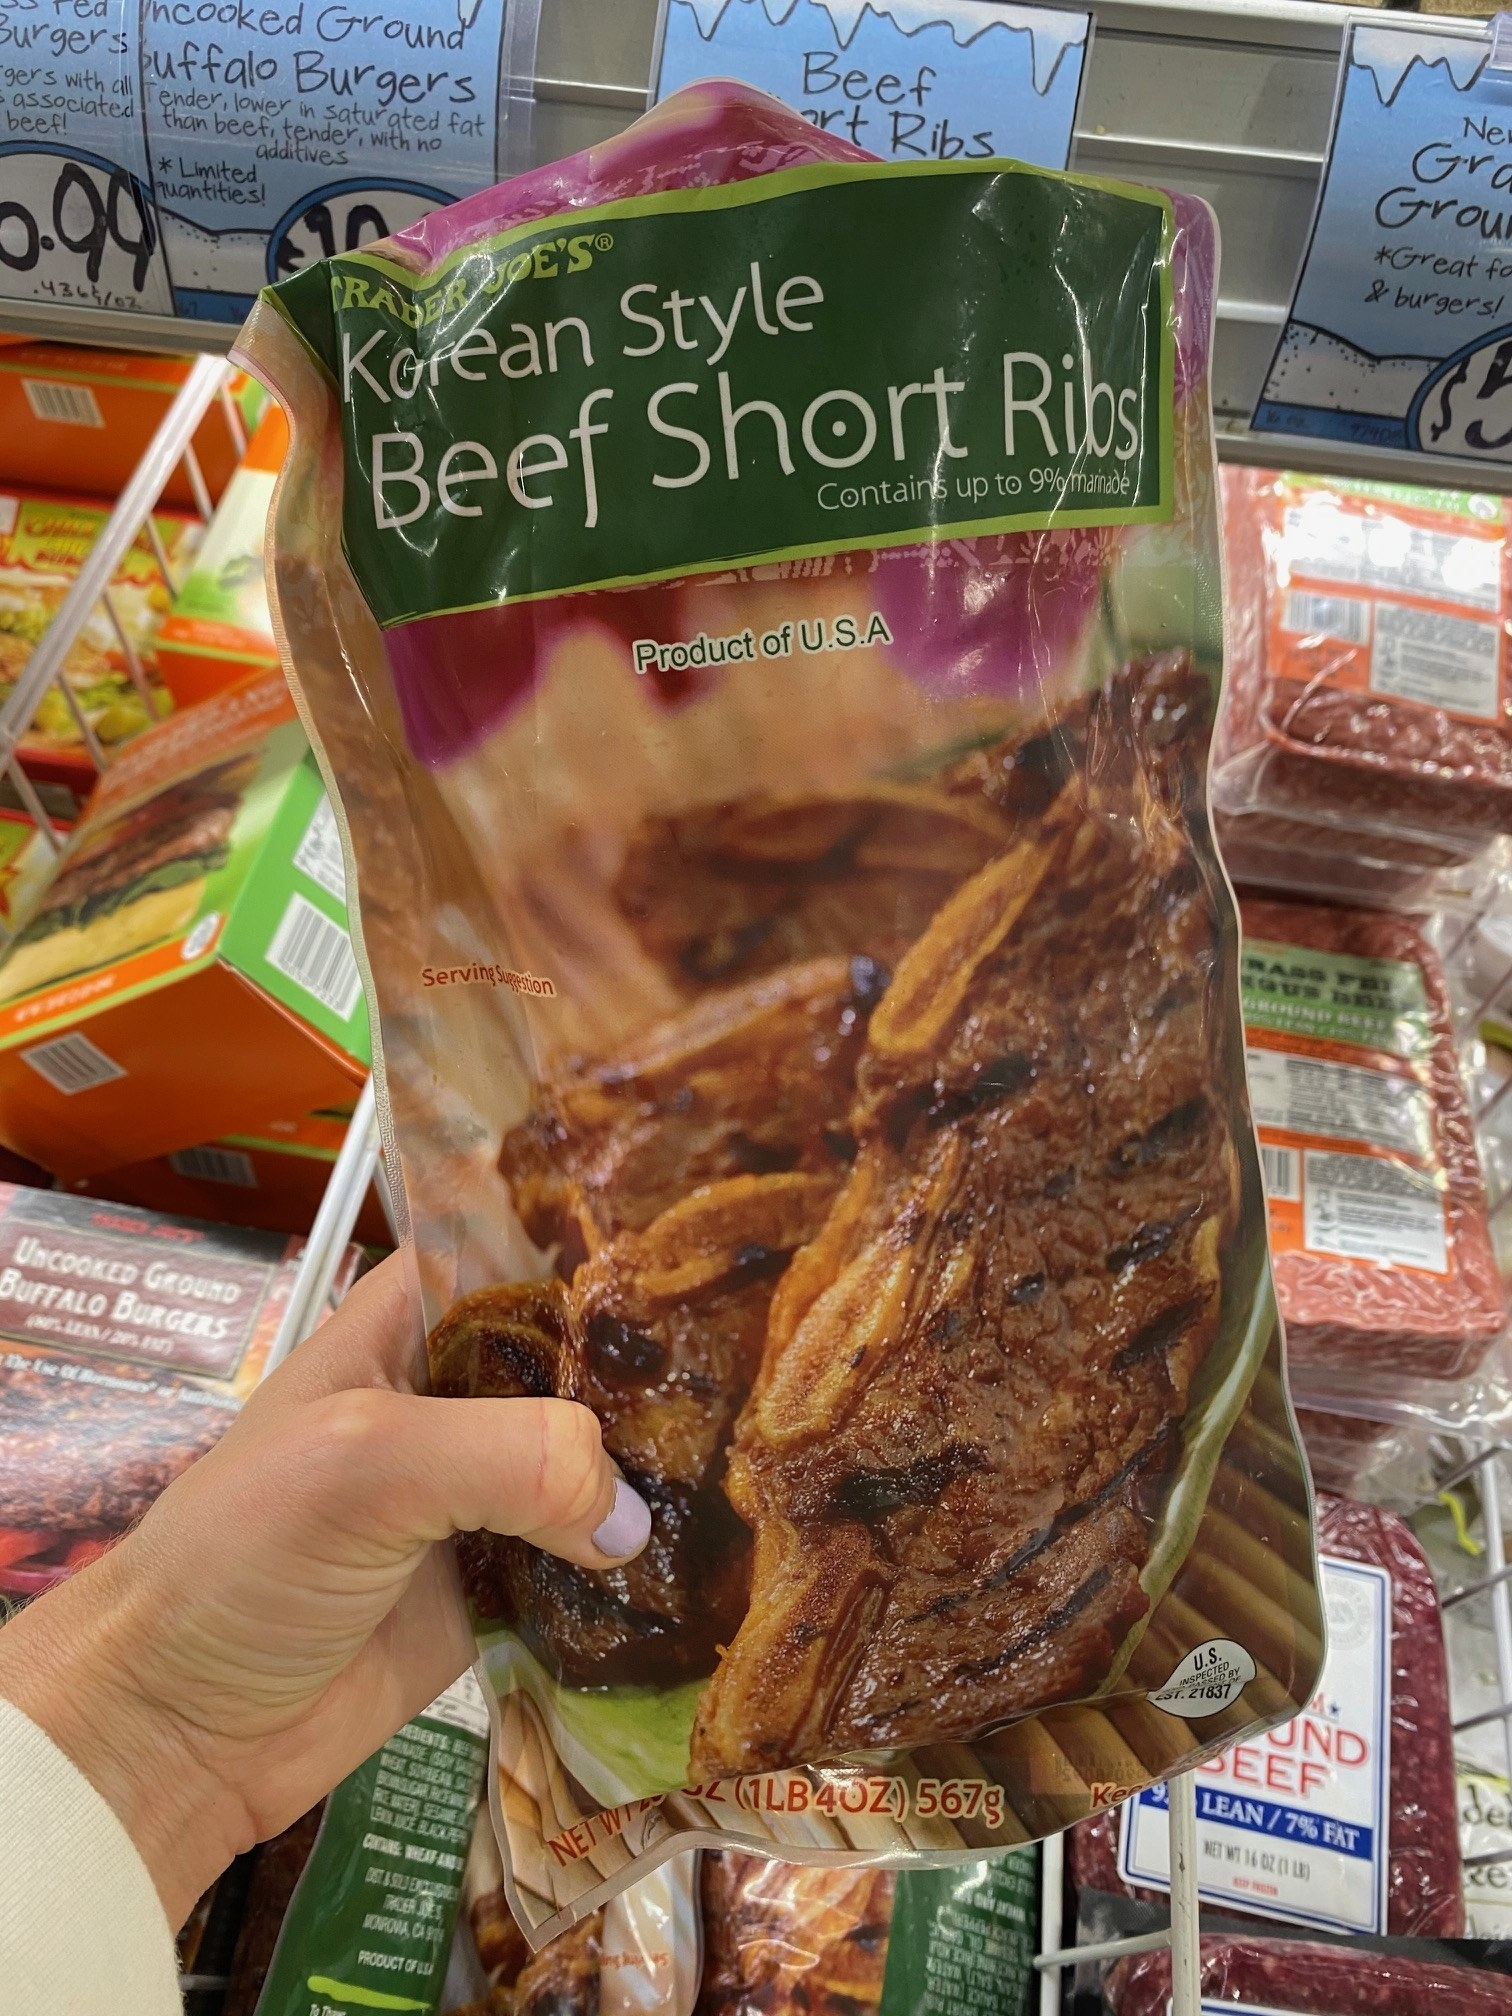 A package of Korean style beef short ribs from Trader Joe's,